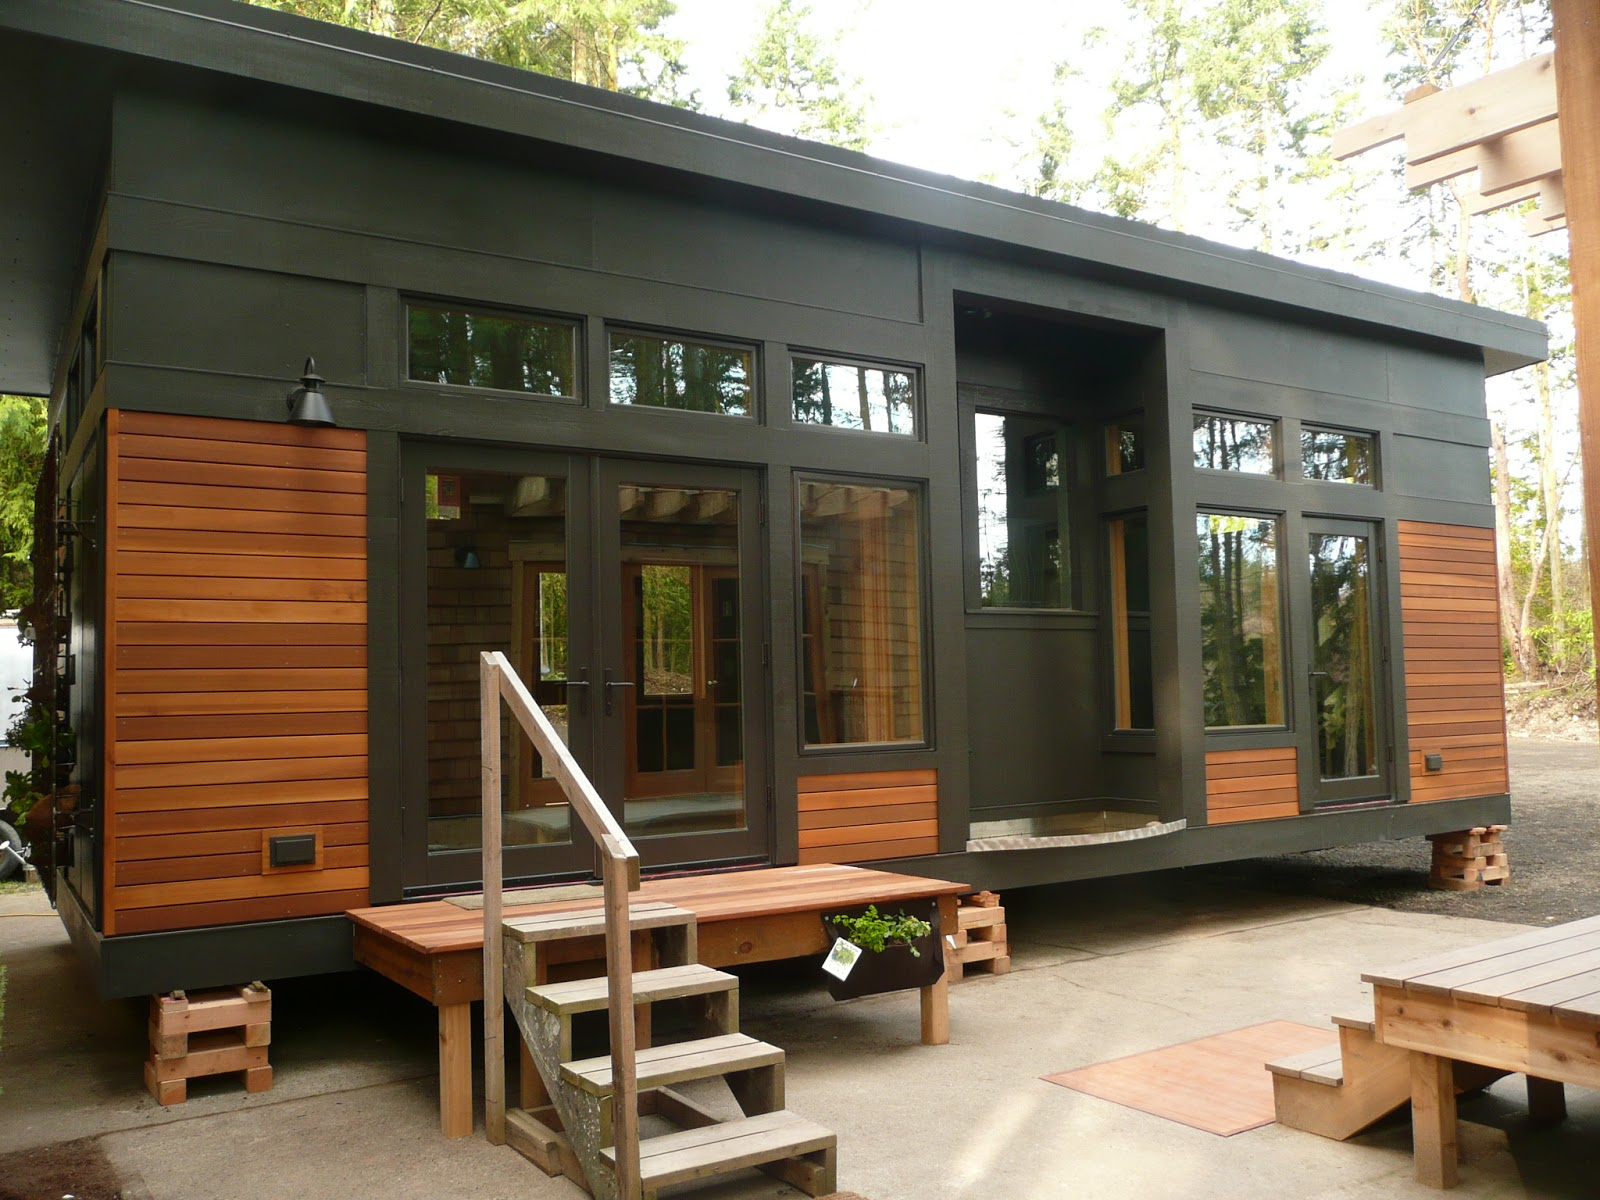 500 sq ft tiny houses pictures inside and out - This 450 Sq Ft Prefab Tiny House Is Both Stunning And Sustainable